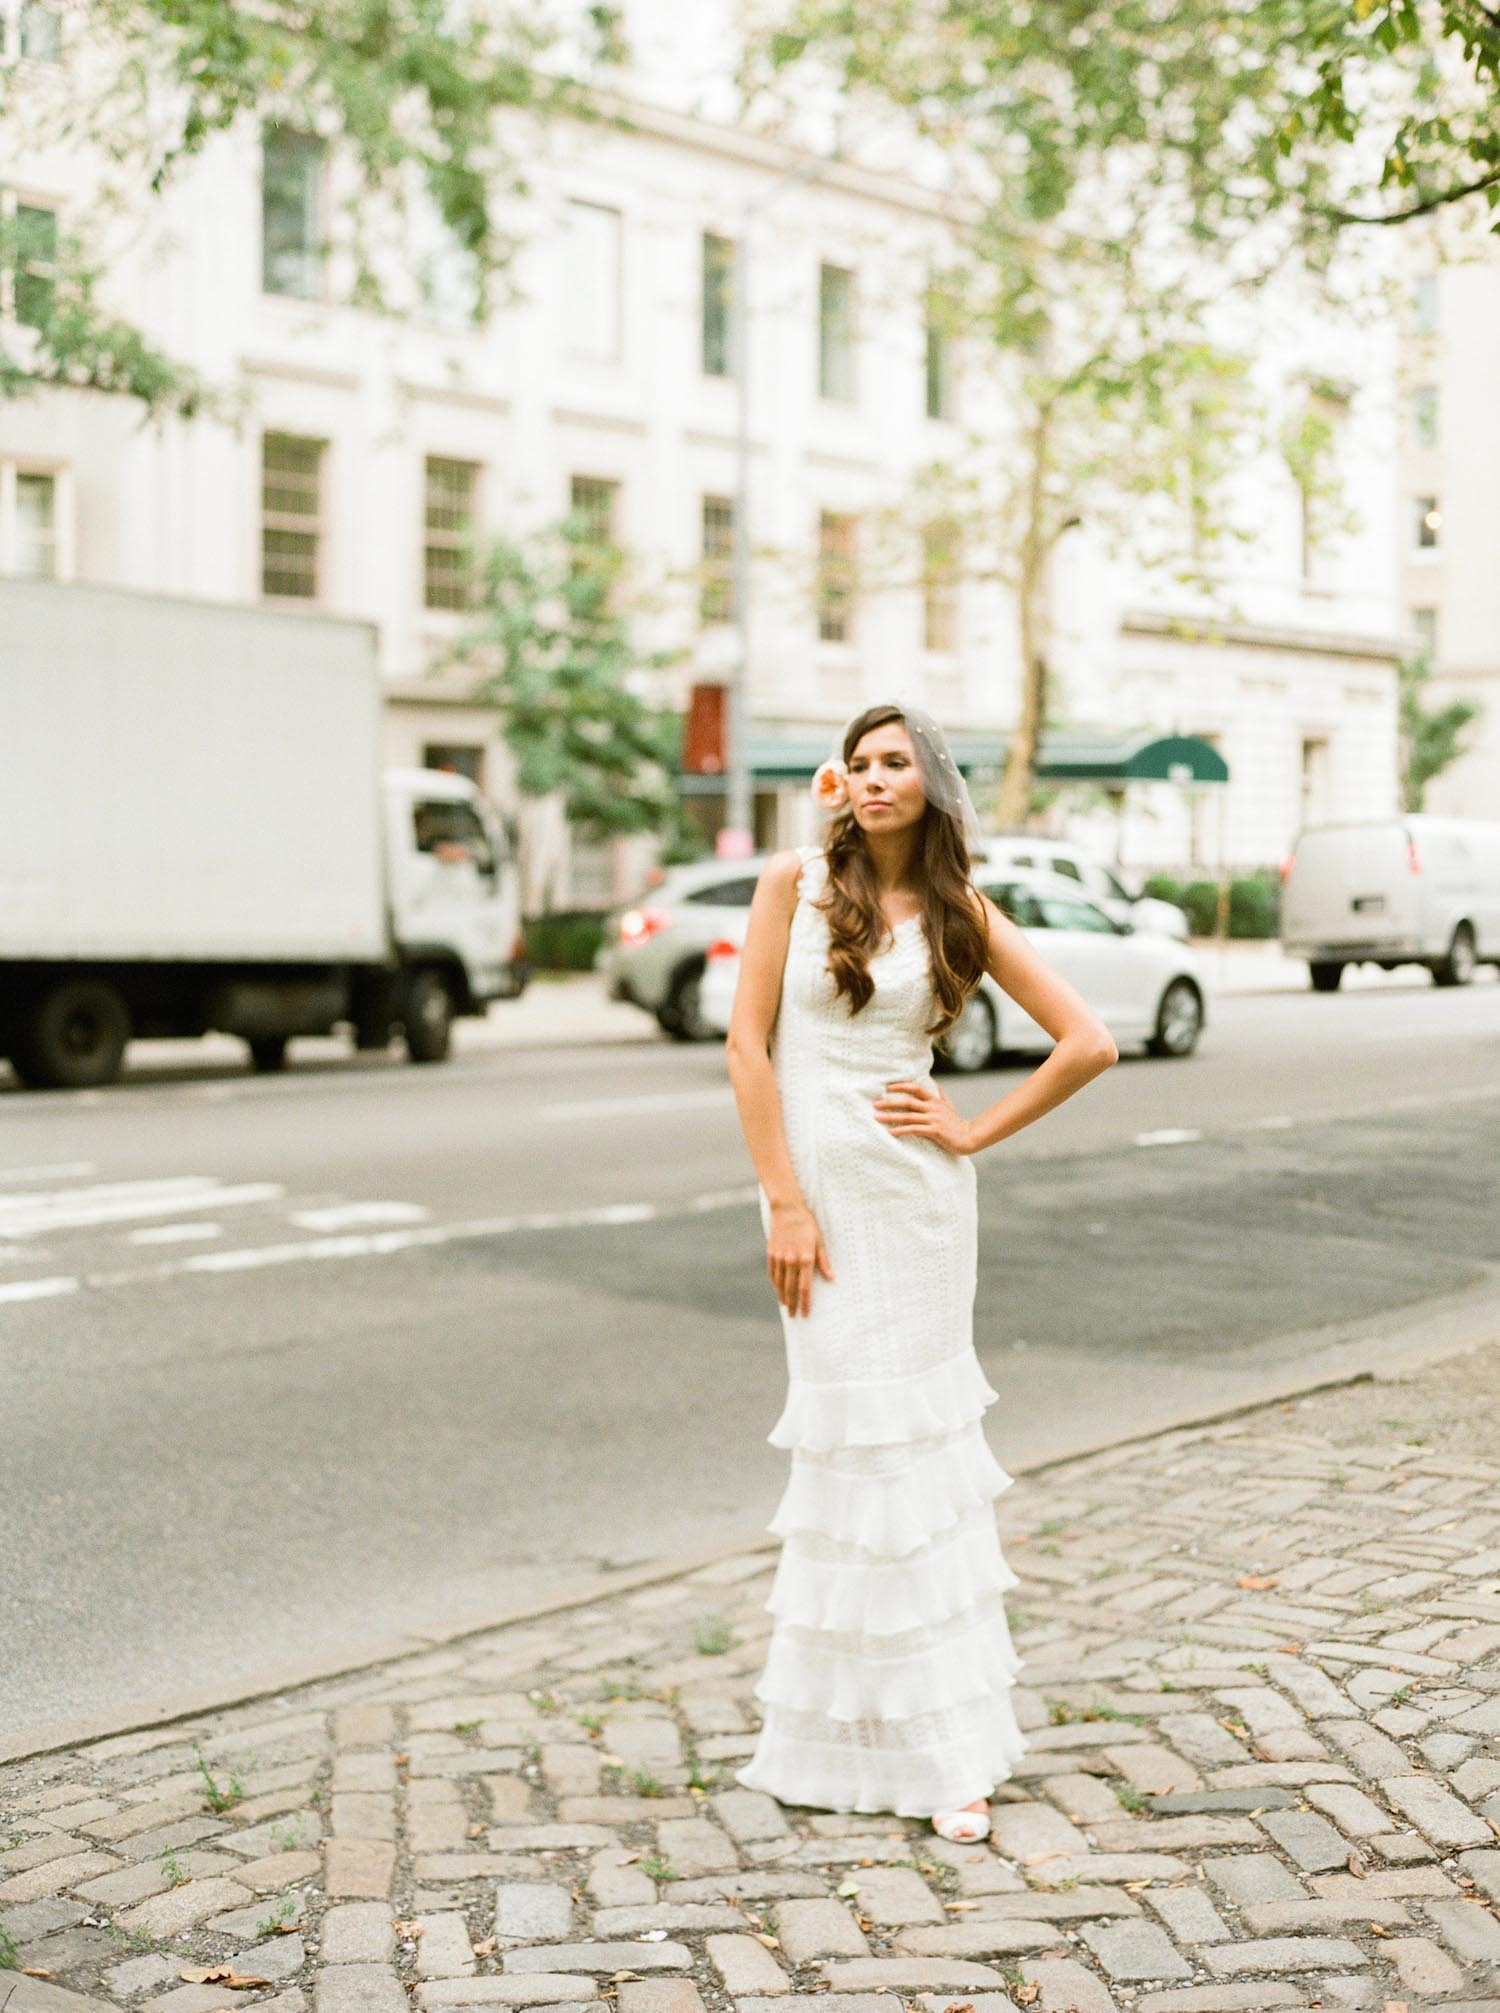 The Flower Bride- NYC Shoot- Lindsay Madden Photography-51 Full Aperture Floral copy.jpeg